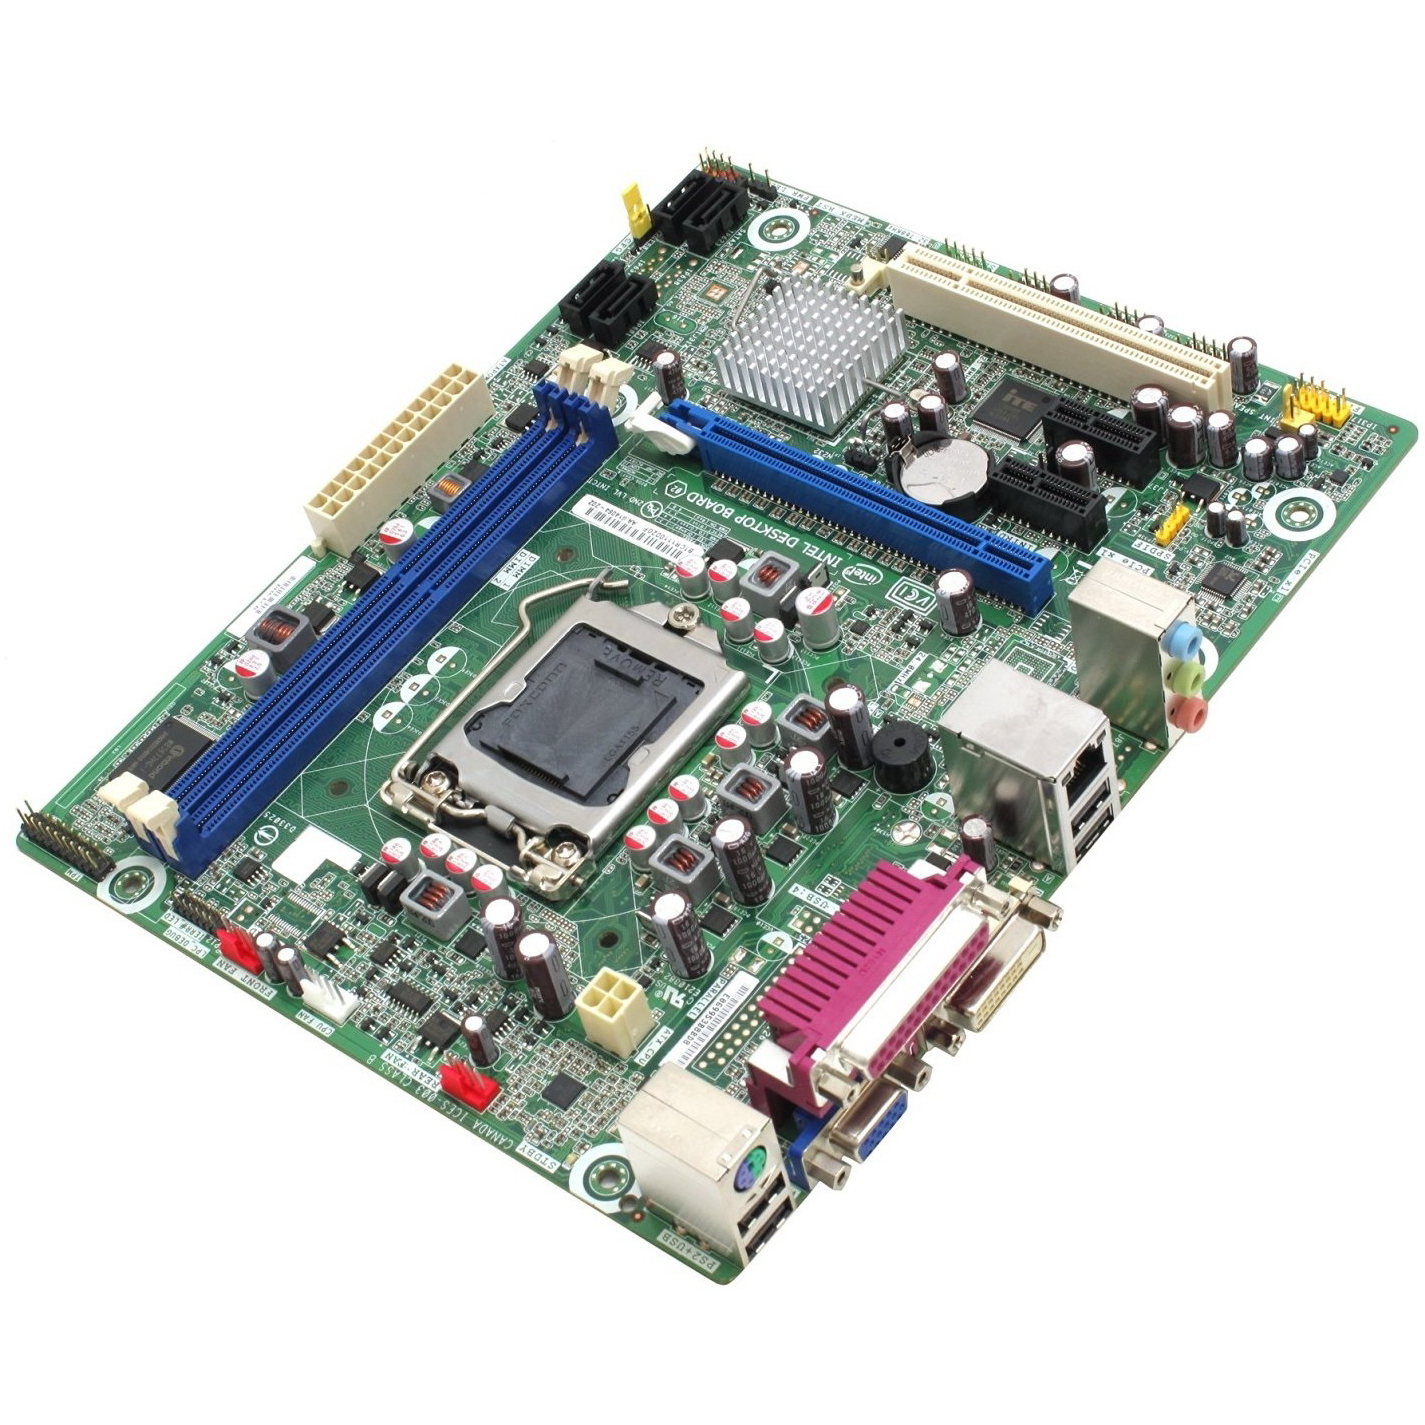 Buy Intel Dh61ww Desktop Motherboard Online In India At Lowest Mainboard Lga 775 I945 Off Board Prices Price